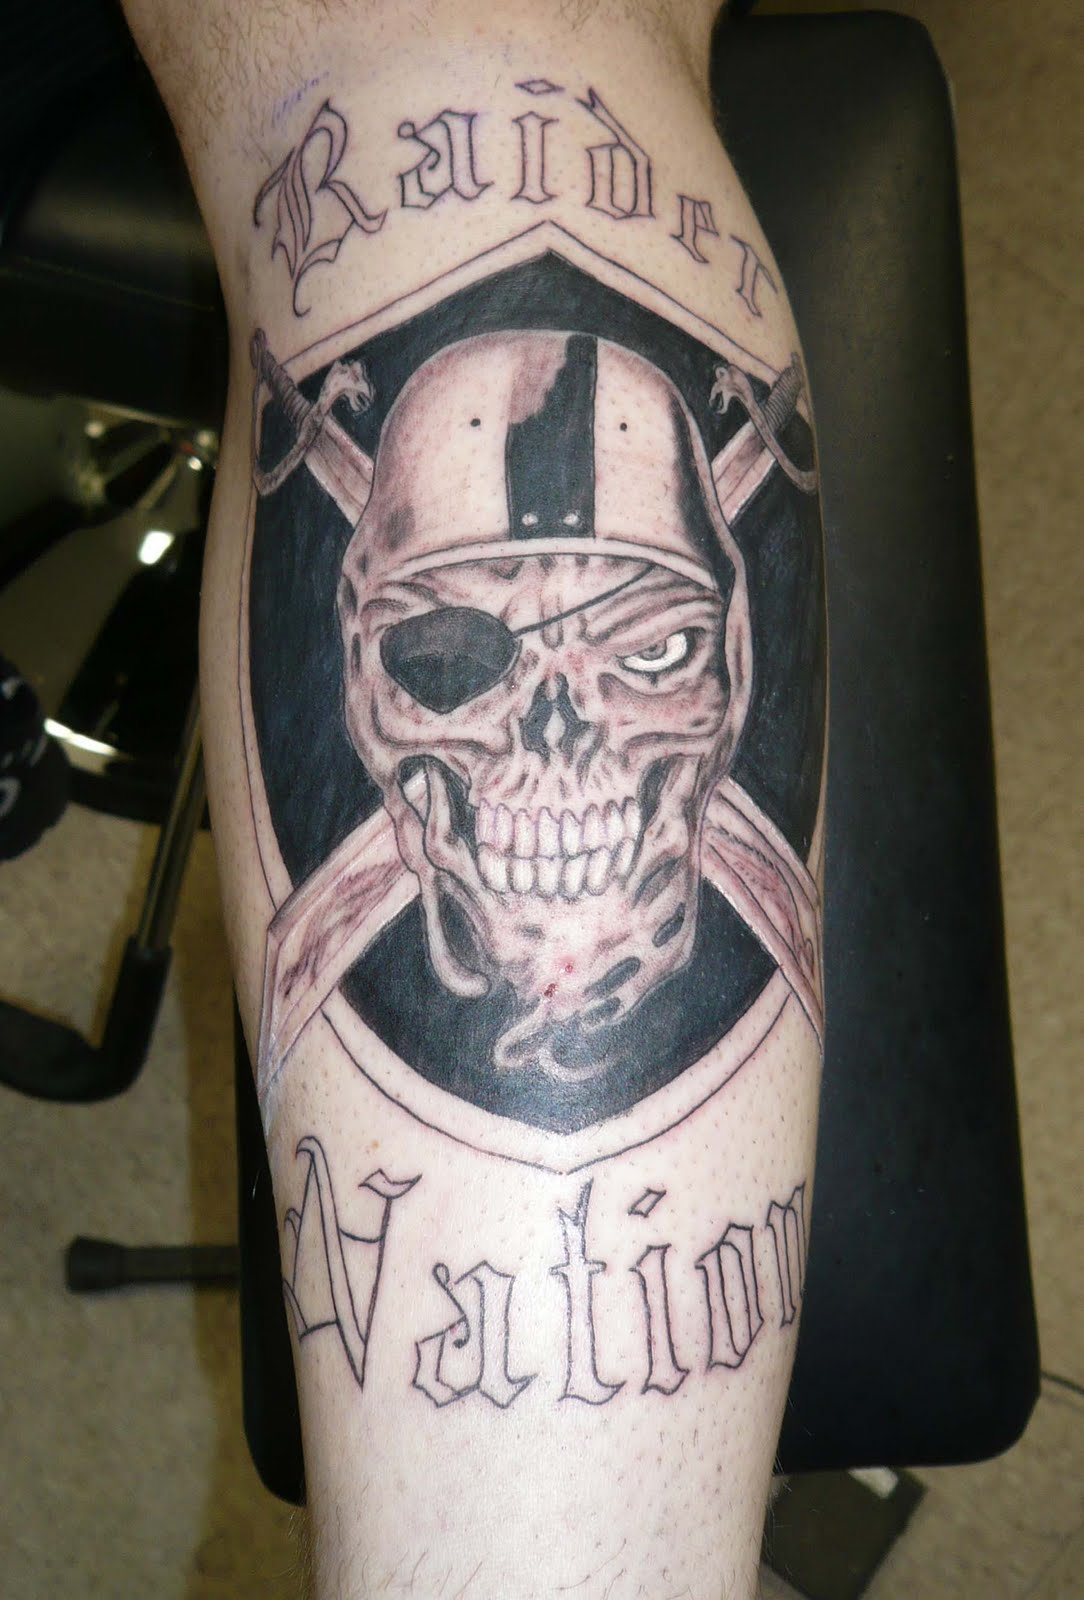 Oakland raider logo with raider nation tattoo for Oakland raiders tattoos designs